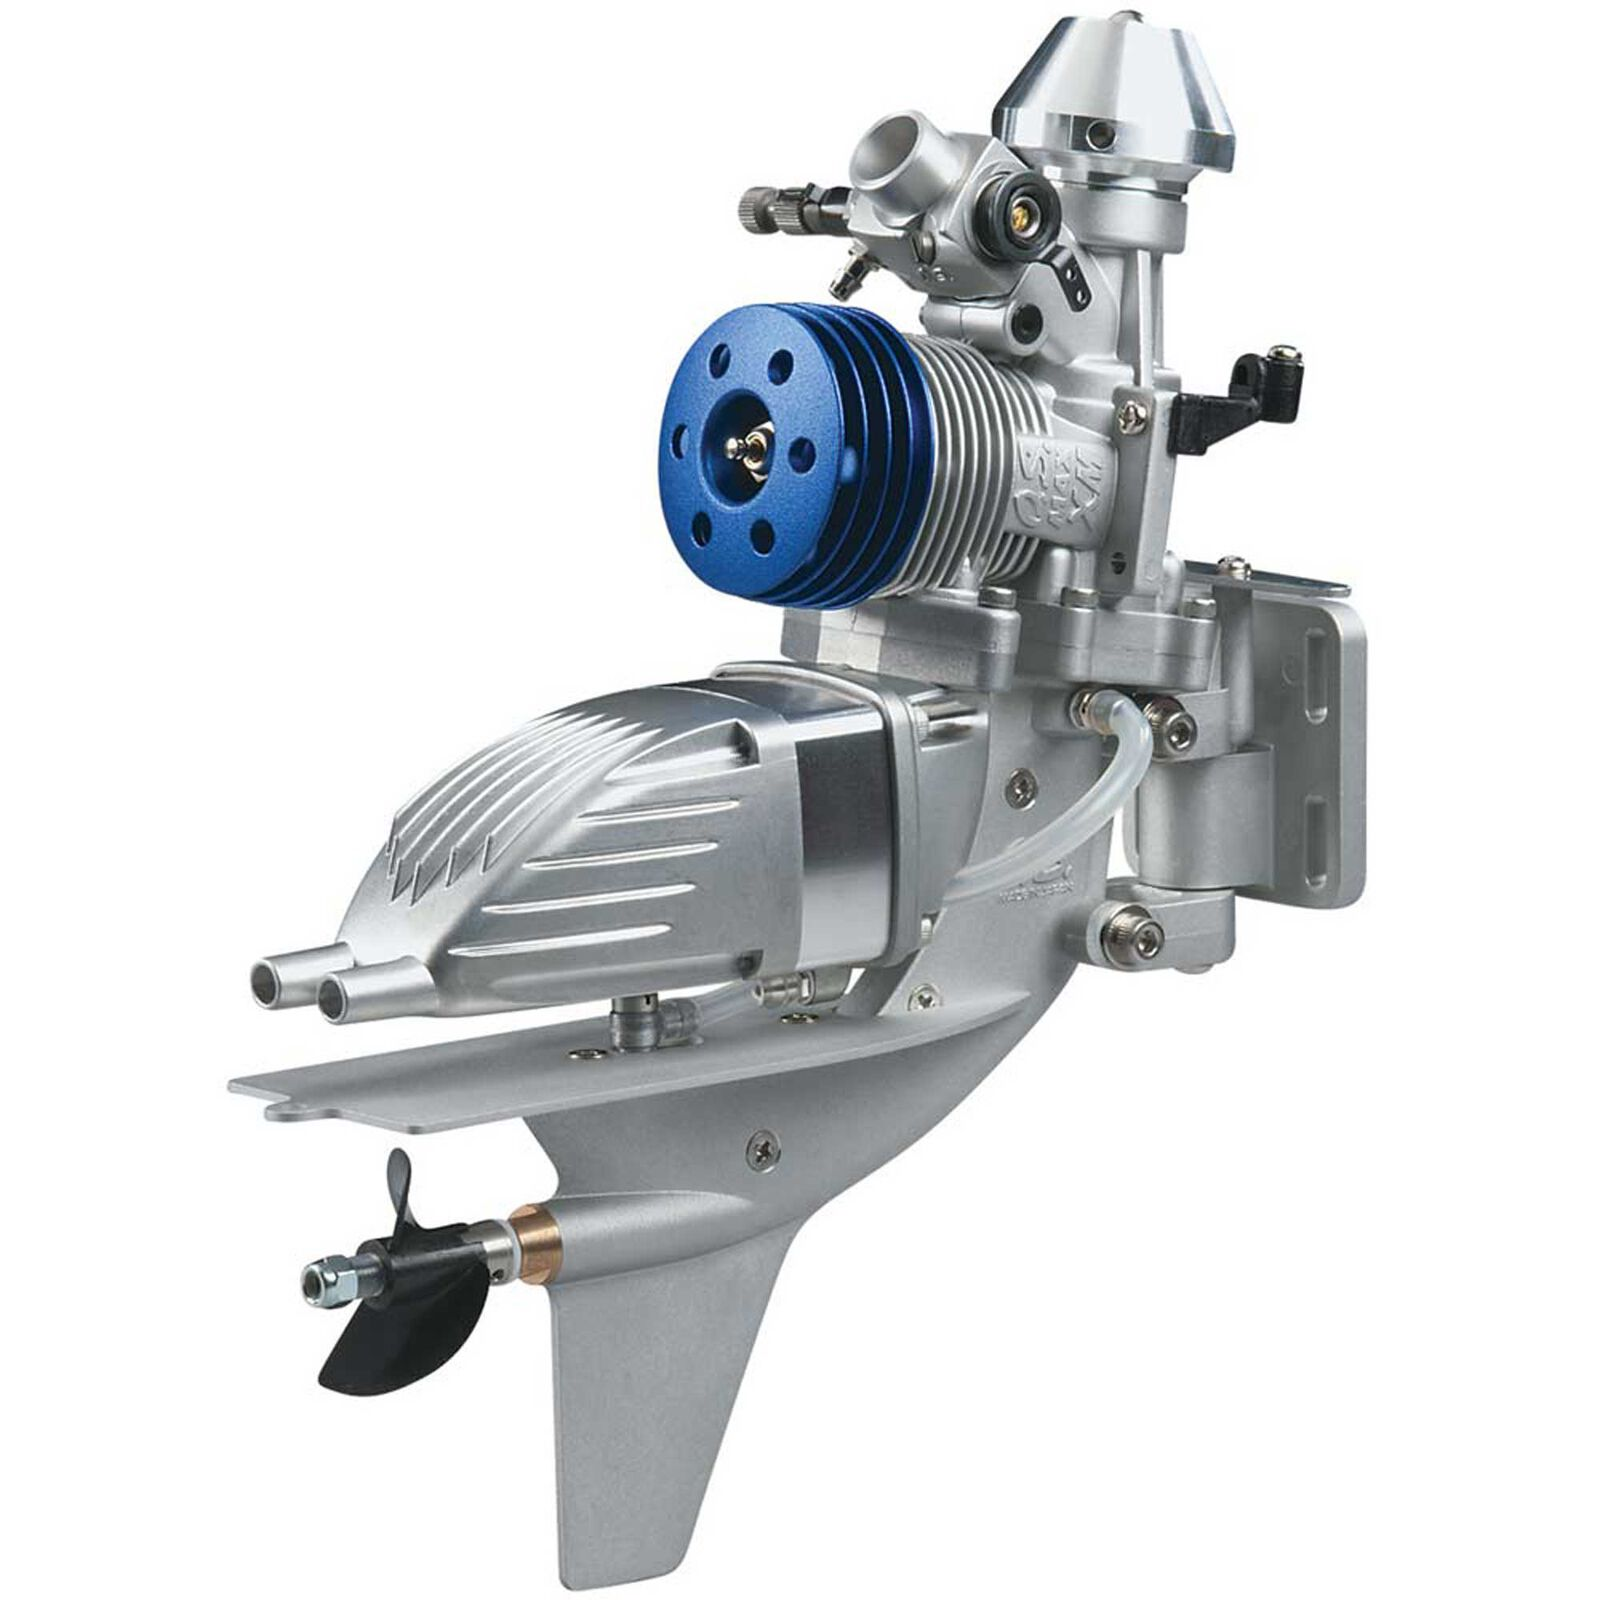 21XM VII .21 Air Cooled Outboard Marine Engine